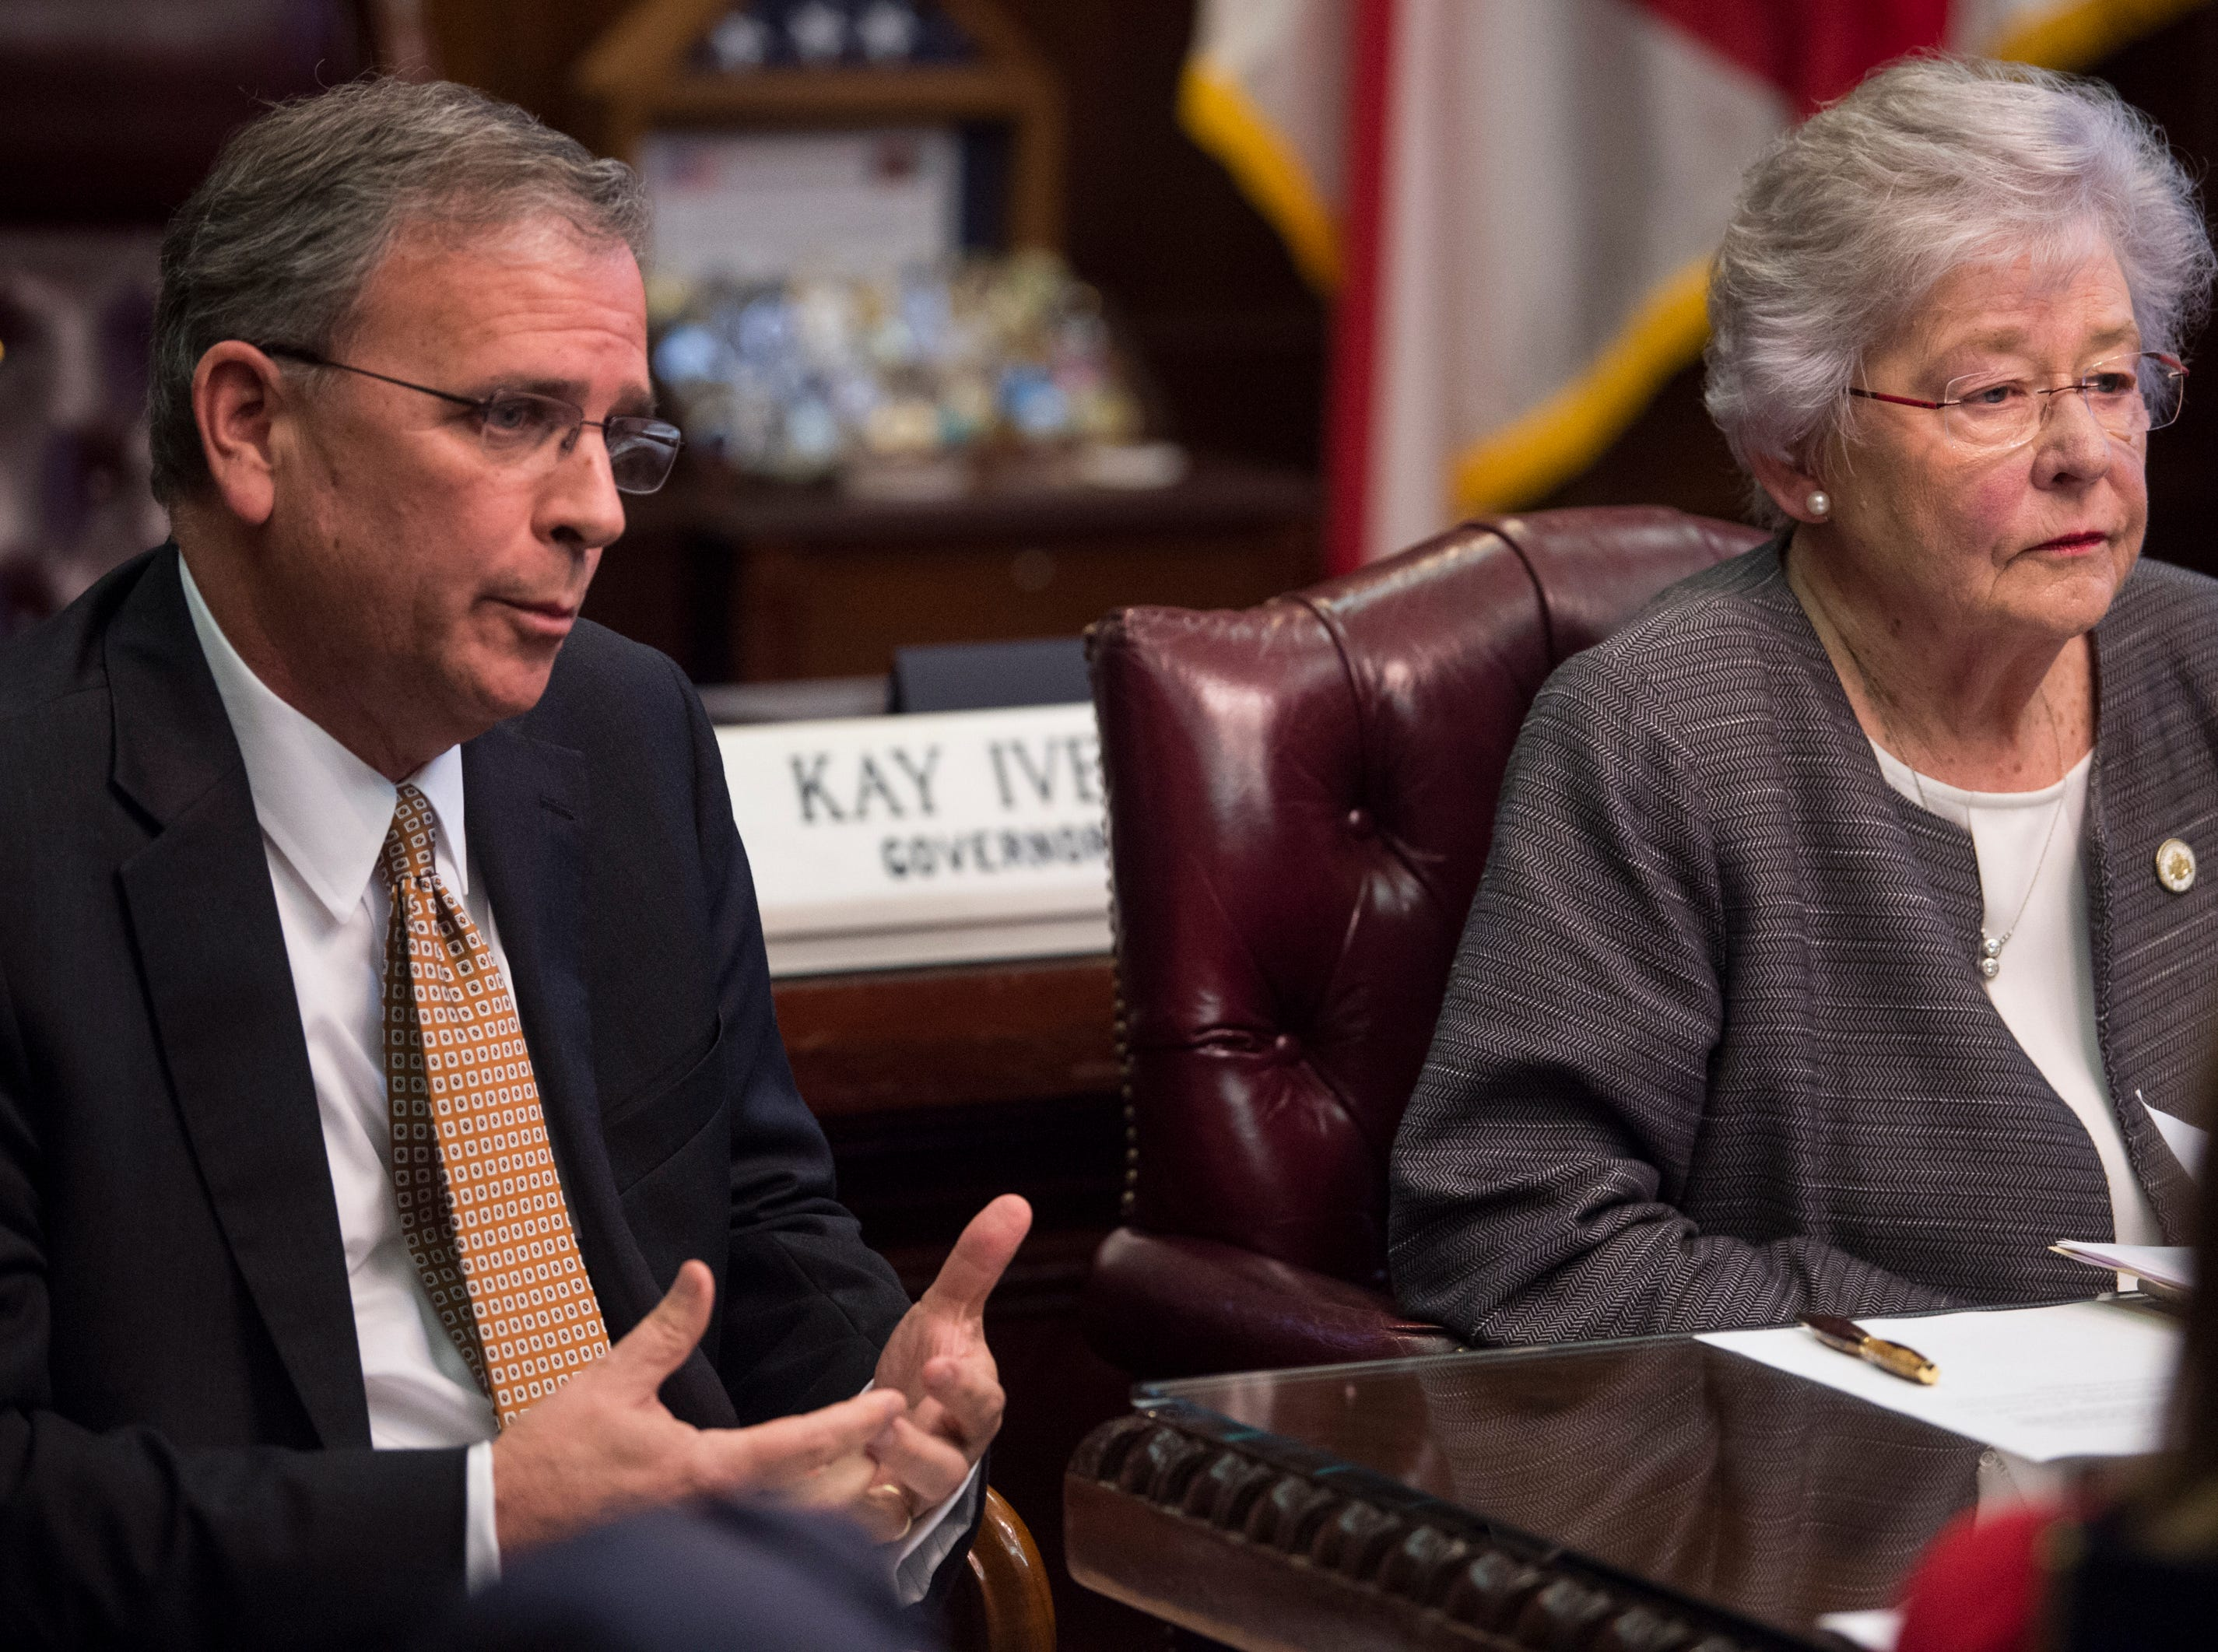 Mike Lanier, president of HPM leadership, speaks with Gov. Kay Ivey during a press conference in the Governor's office at the Alabama State Capitol in Montgomery, Ala., on Tuesday, Feb. 12, 2019.